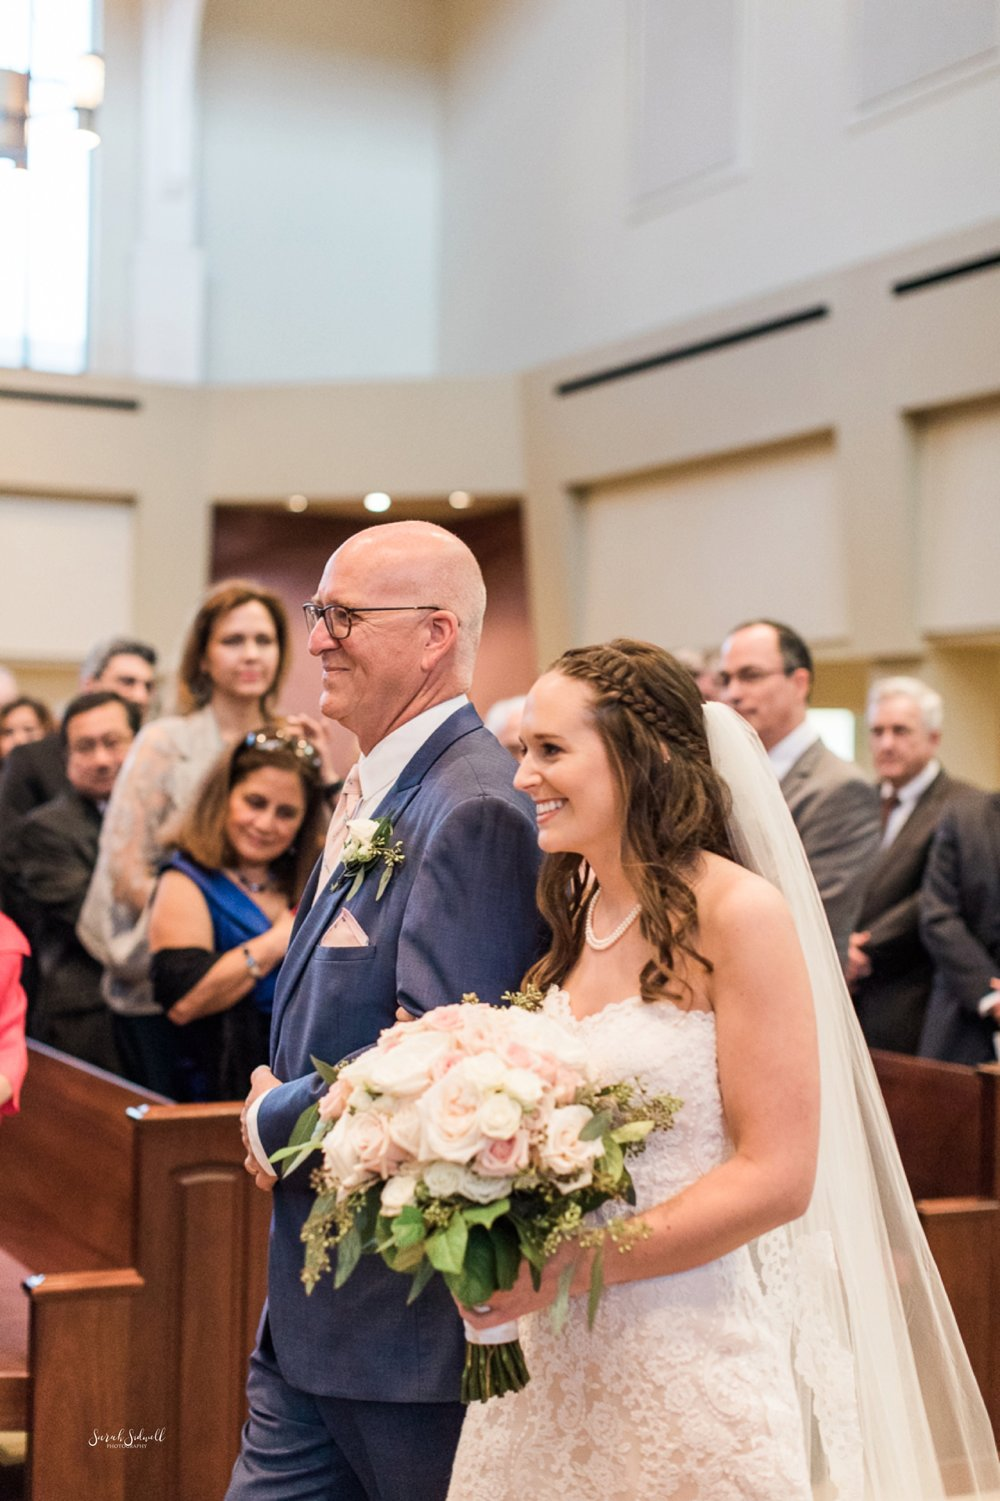 A man walks his daughter down the aisle for her wedding.